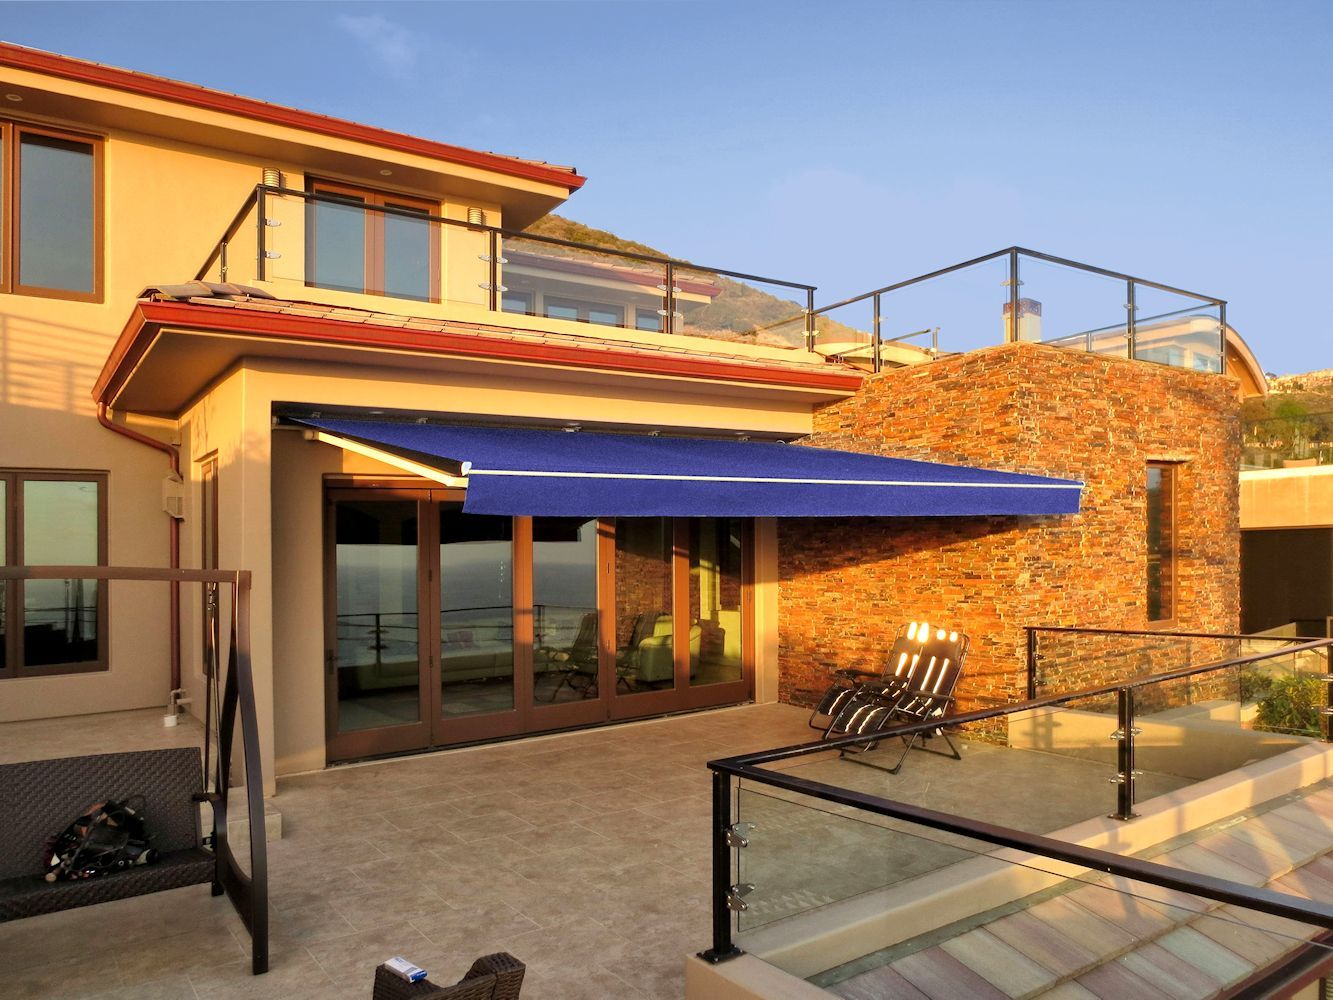 Retractable Awning By Superior Awning Southern California Patio Covered Patio Custom Awnings